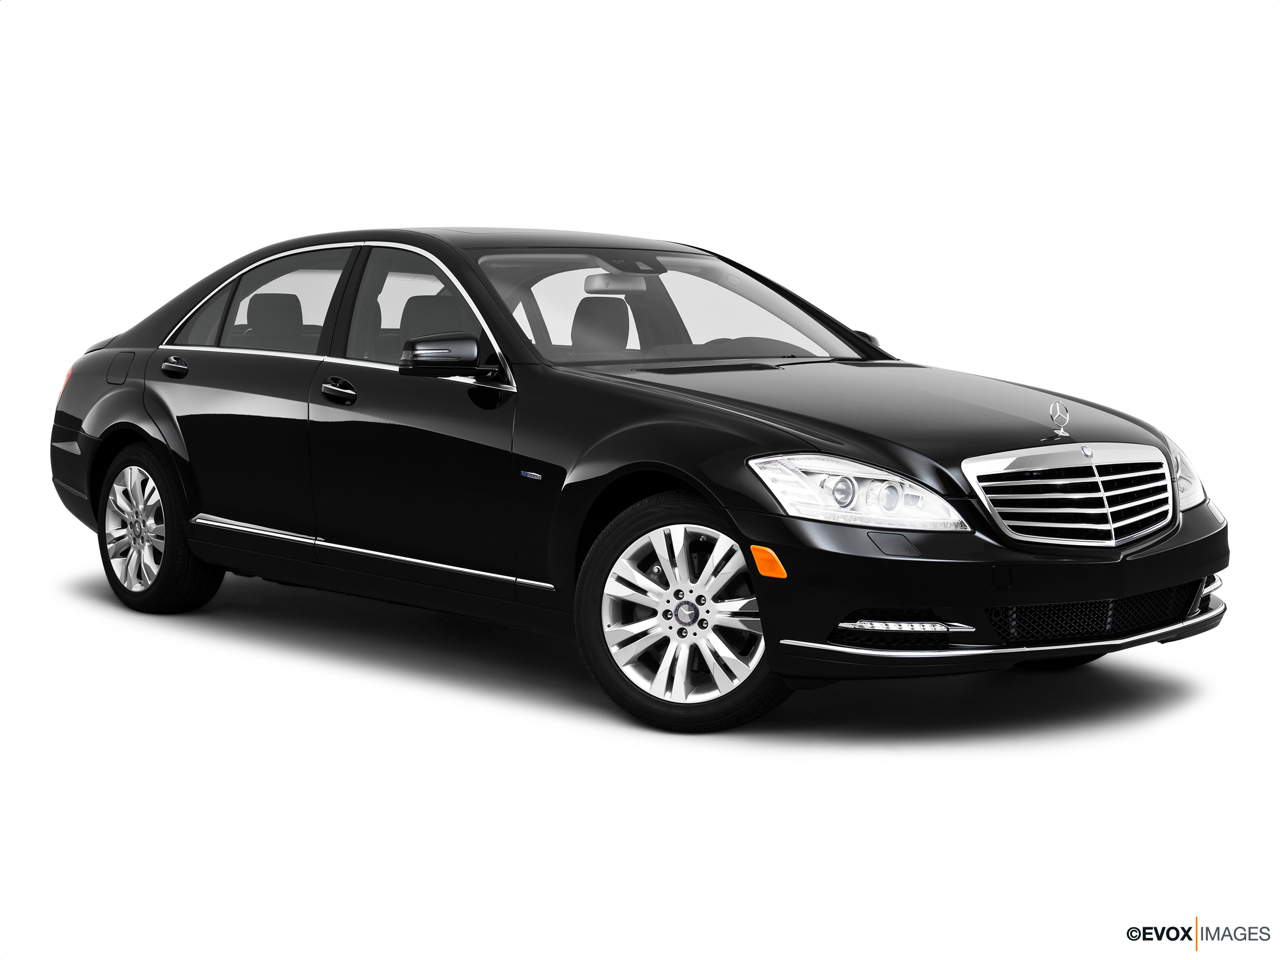 2010 Mercedes-Benz S-Class Hybrid S400 Front passenger 3/4 w/ wheels turned.